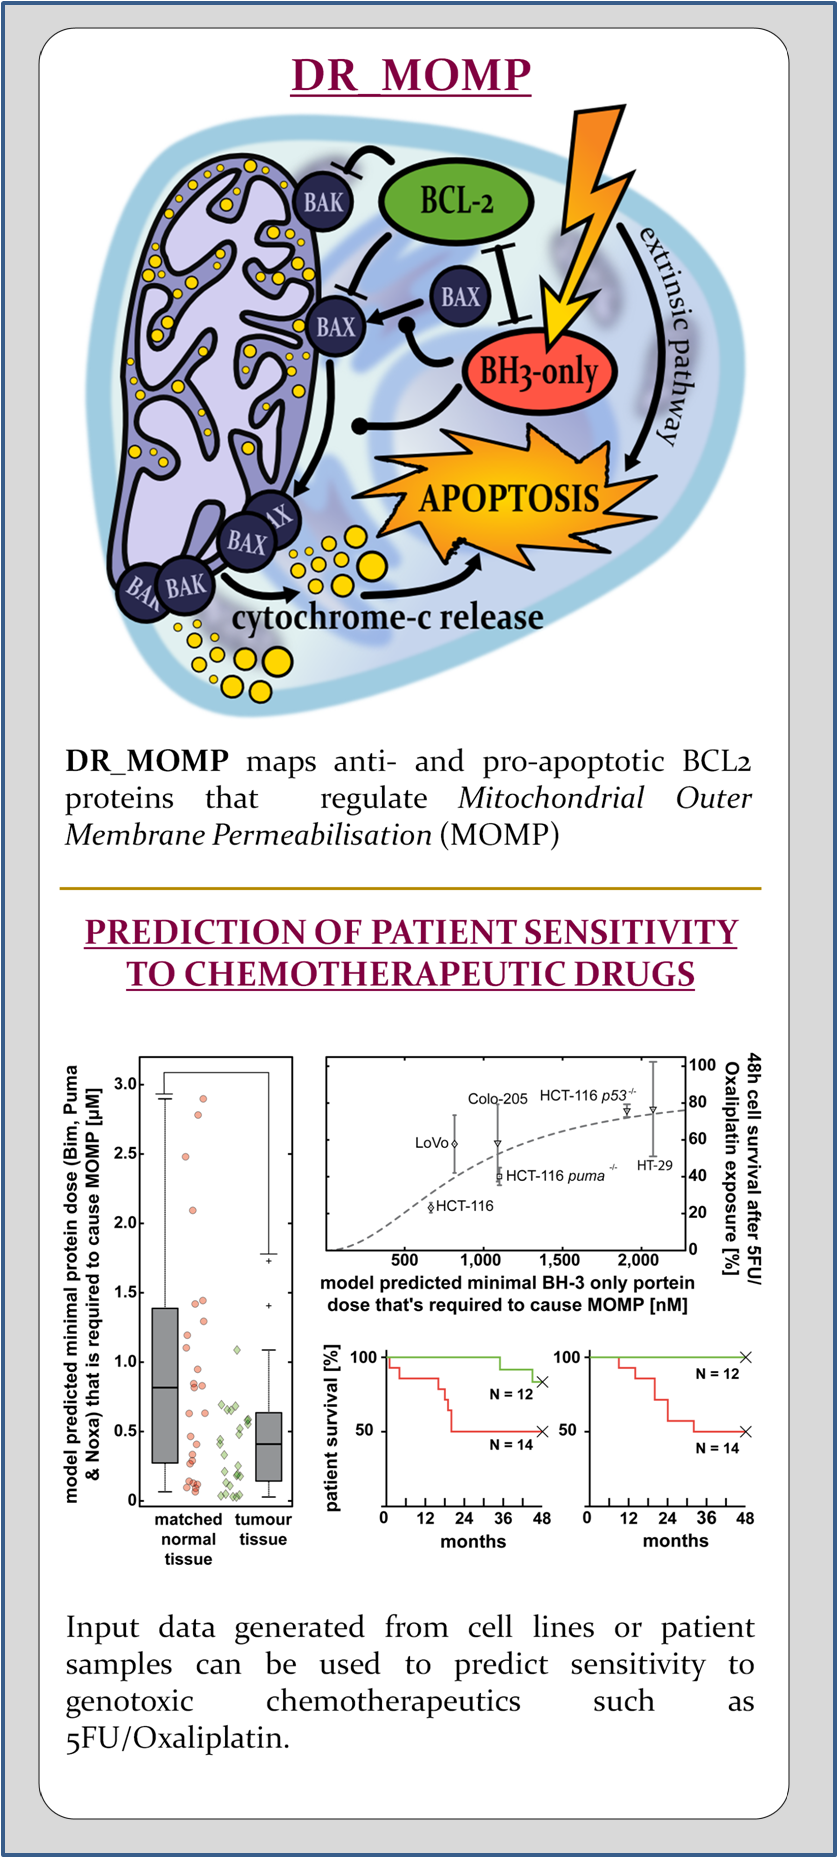 Dose-Response Medicinal Outcome Model Predictor